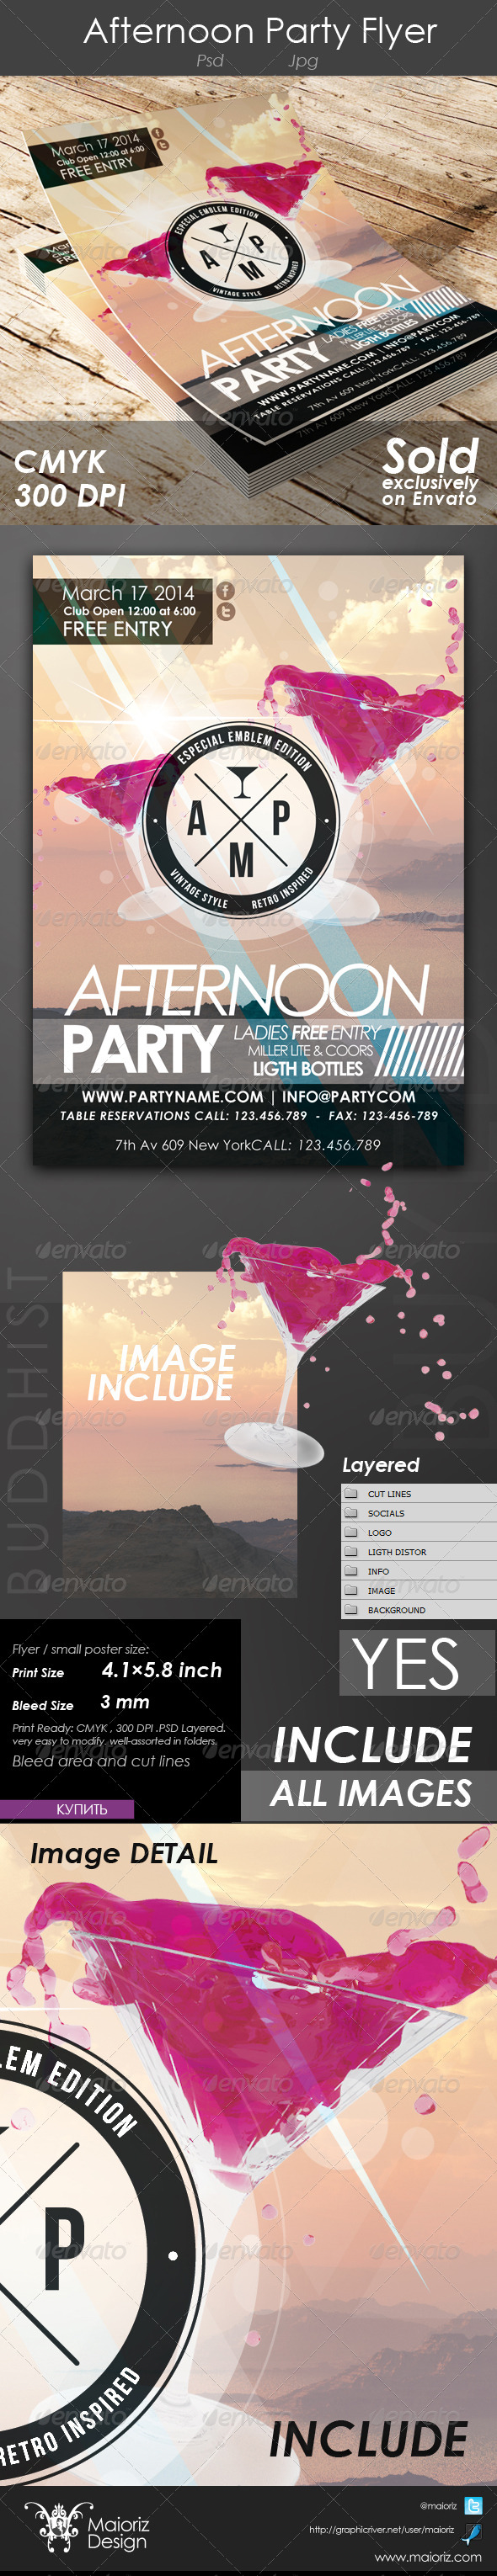 Afternoon Party Flyer - Clubs & Parties Events